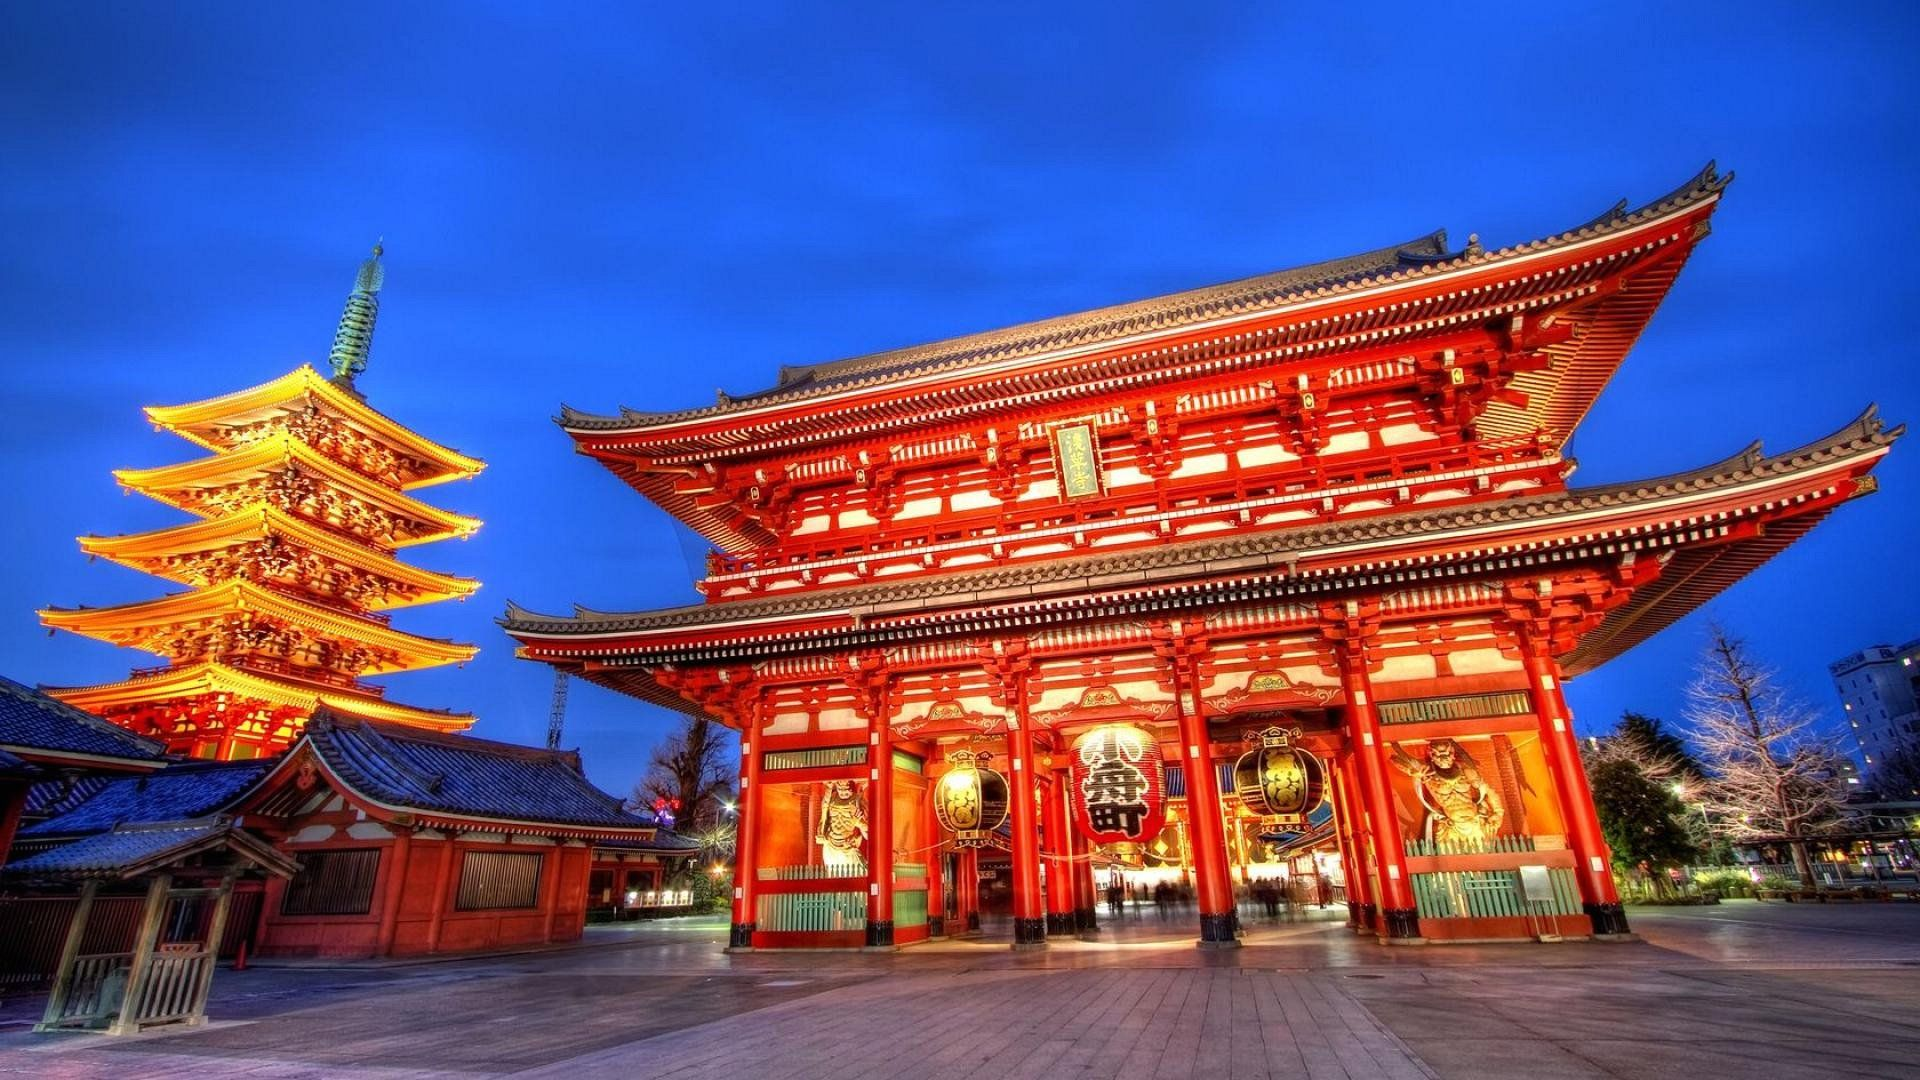 1920x1080 Wallpaper Temple In Tokyo Japan - 1920 x 1080 - Cities Metropolis ...